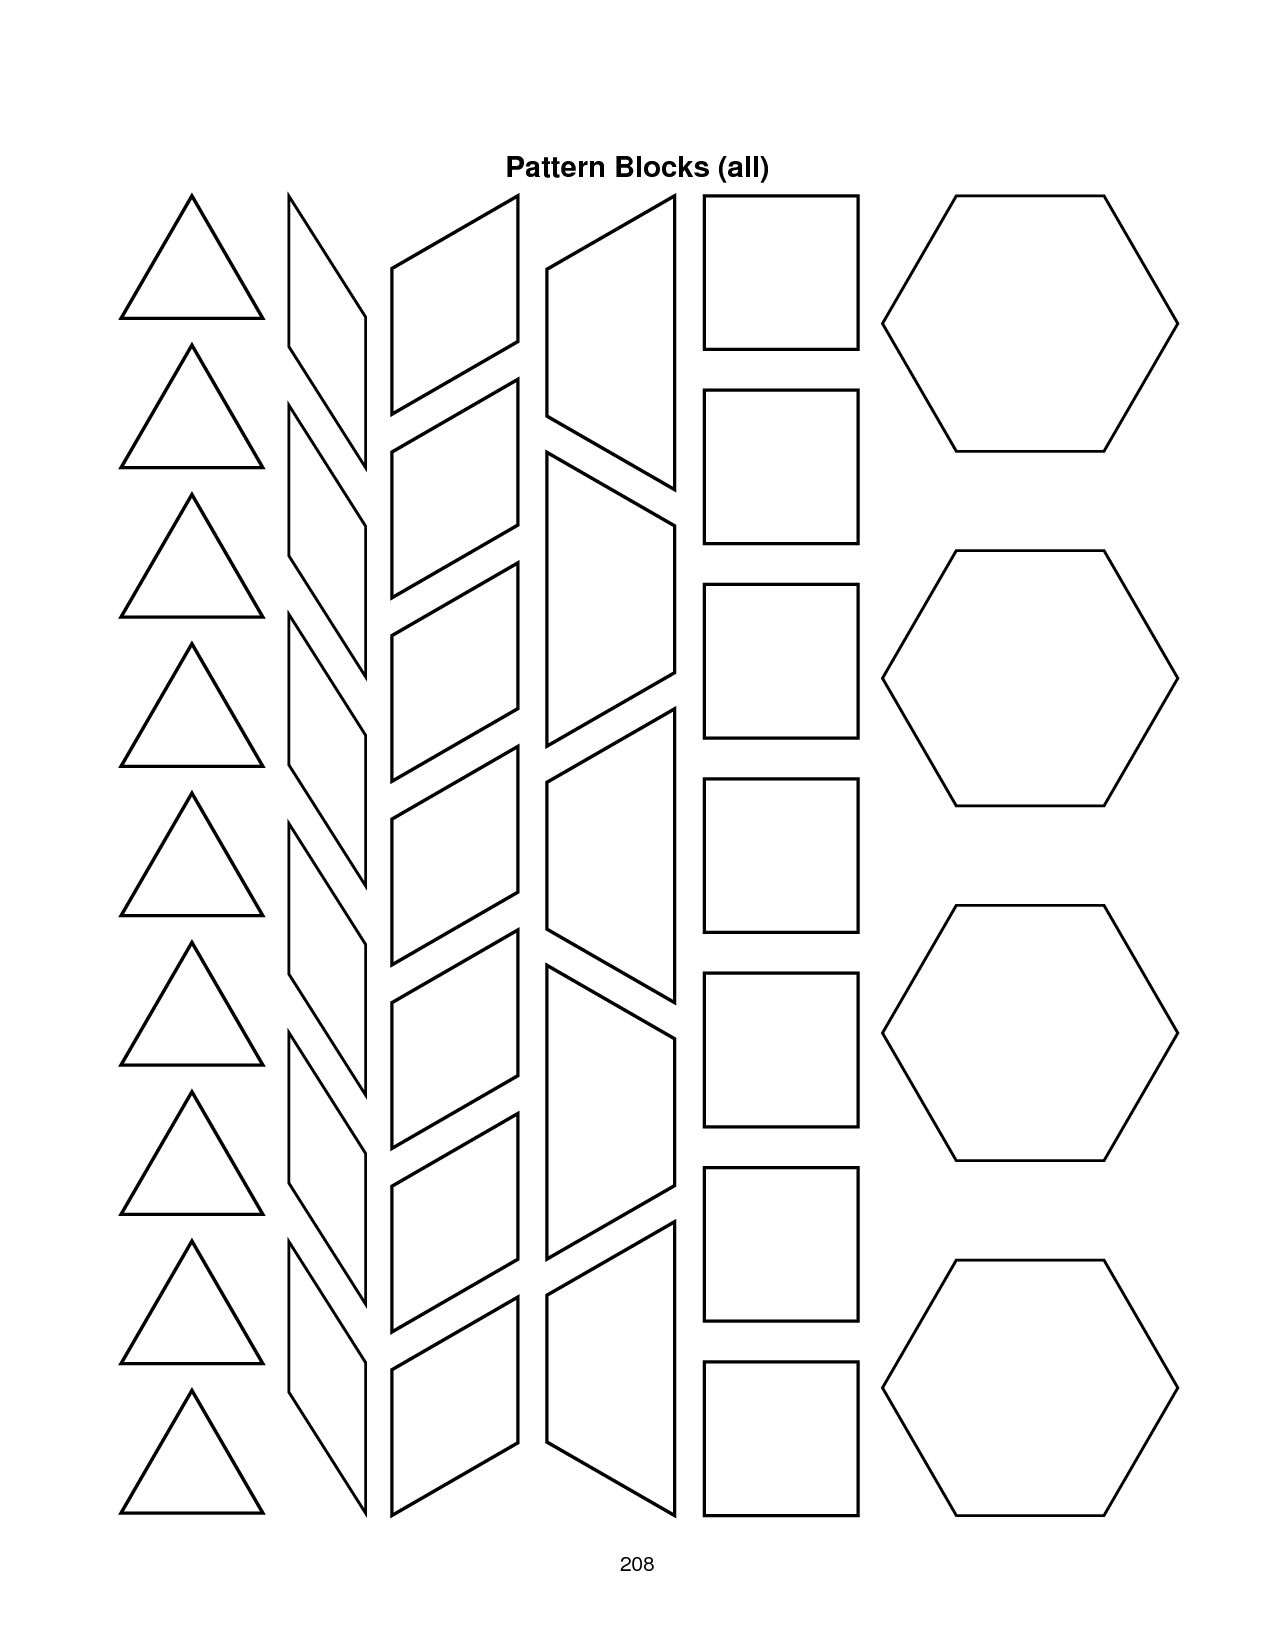 hight resolution of 28 Images Of Blank Alphabet Pattern Block Template   Migapps with Blank Pattern  Block Templates…   Pattern block templates